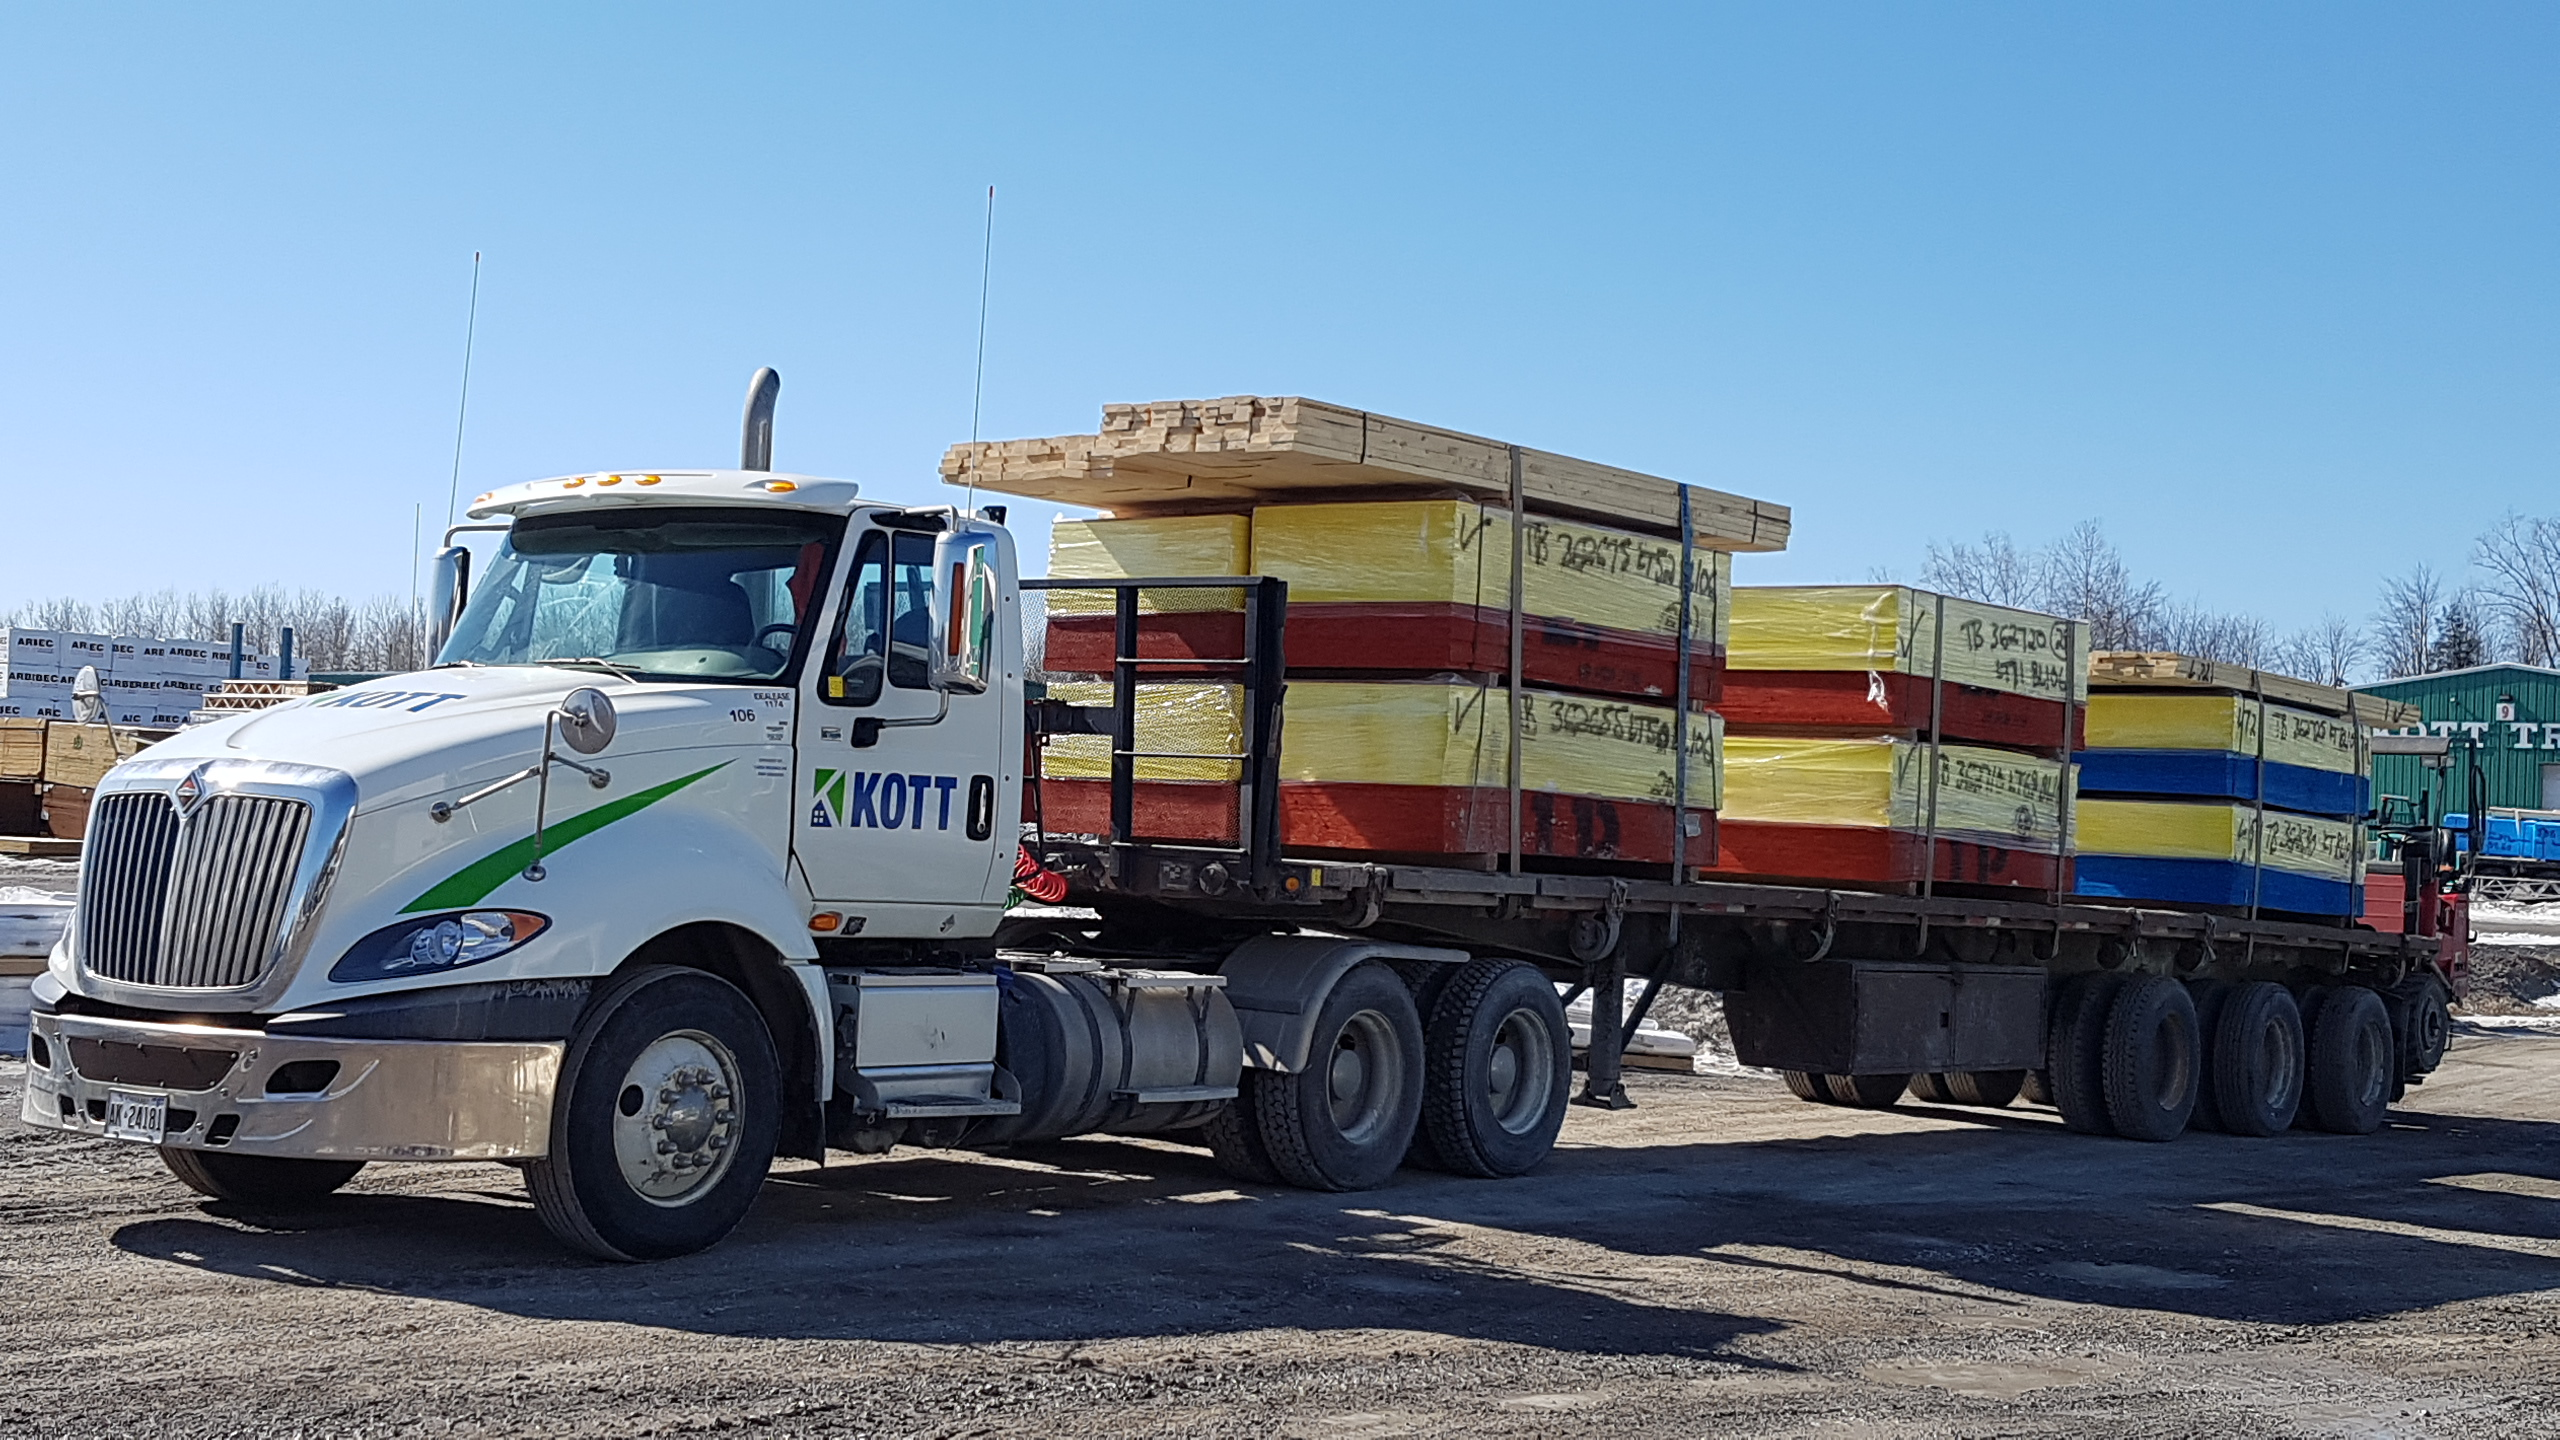 KOTT supplies framing lumber